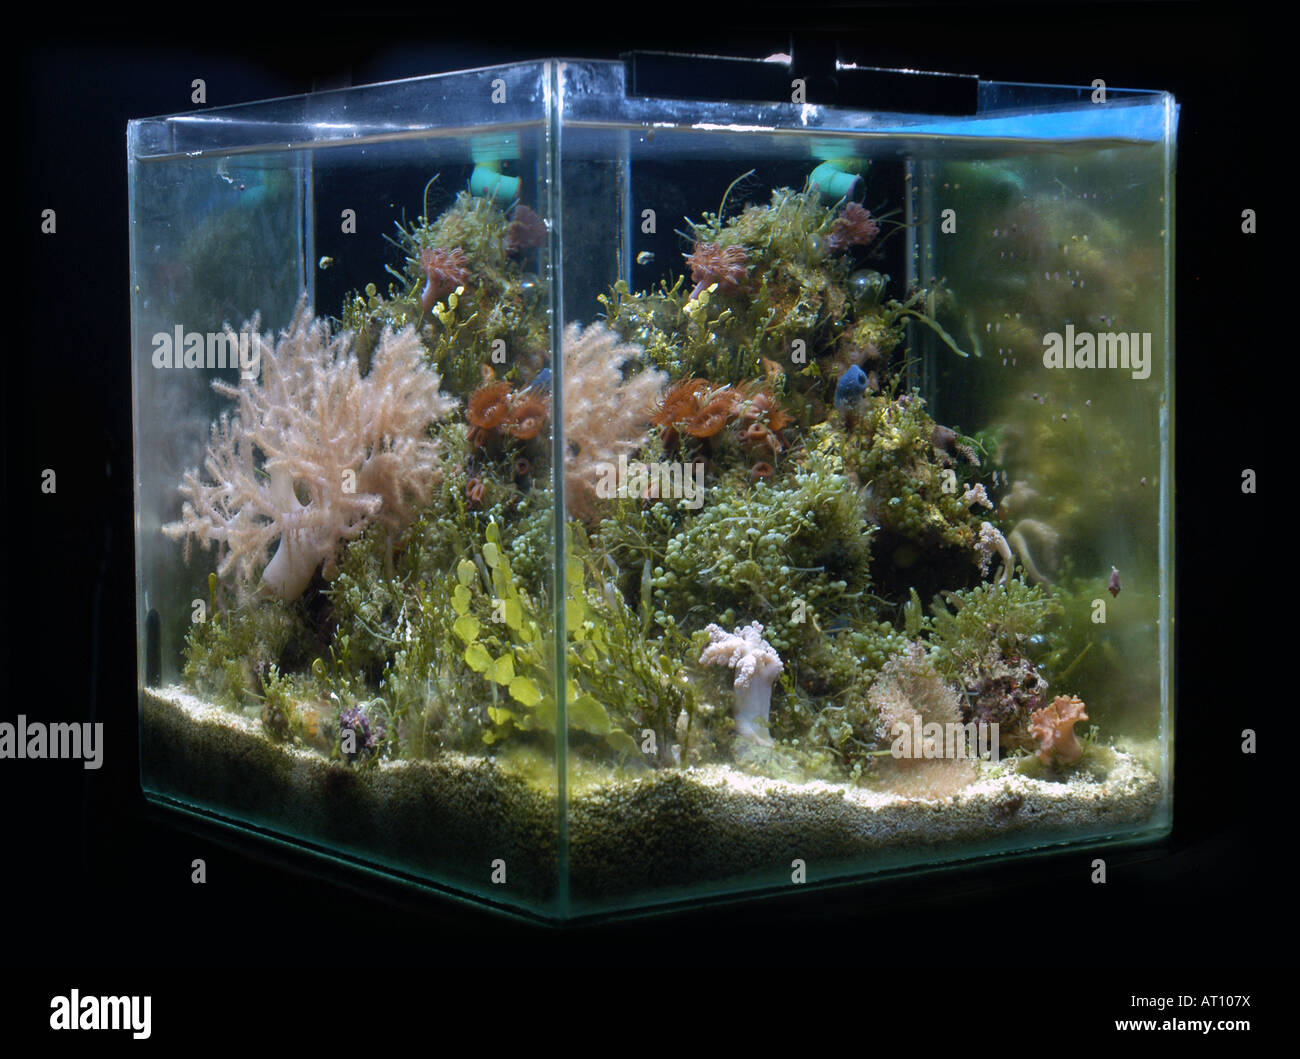 Small nano aquarium fish tank tropical - Nano Reef Small Tropical Marine Aquarium Stock Image